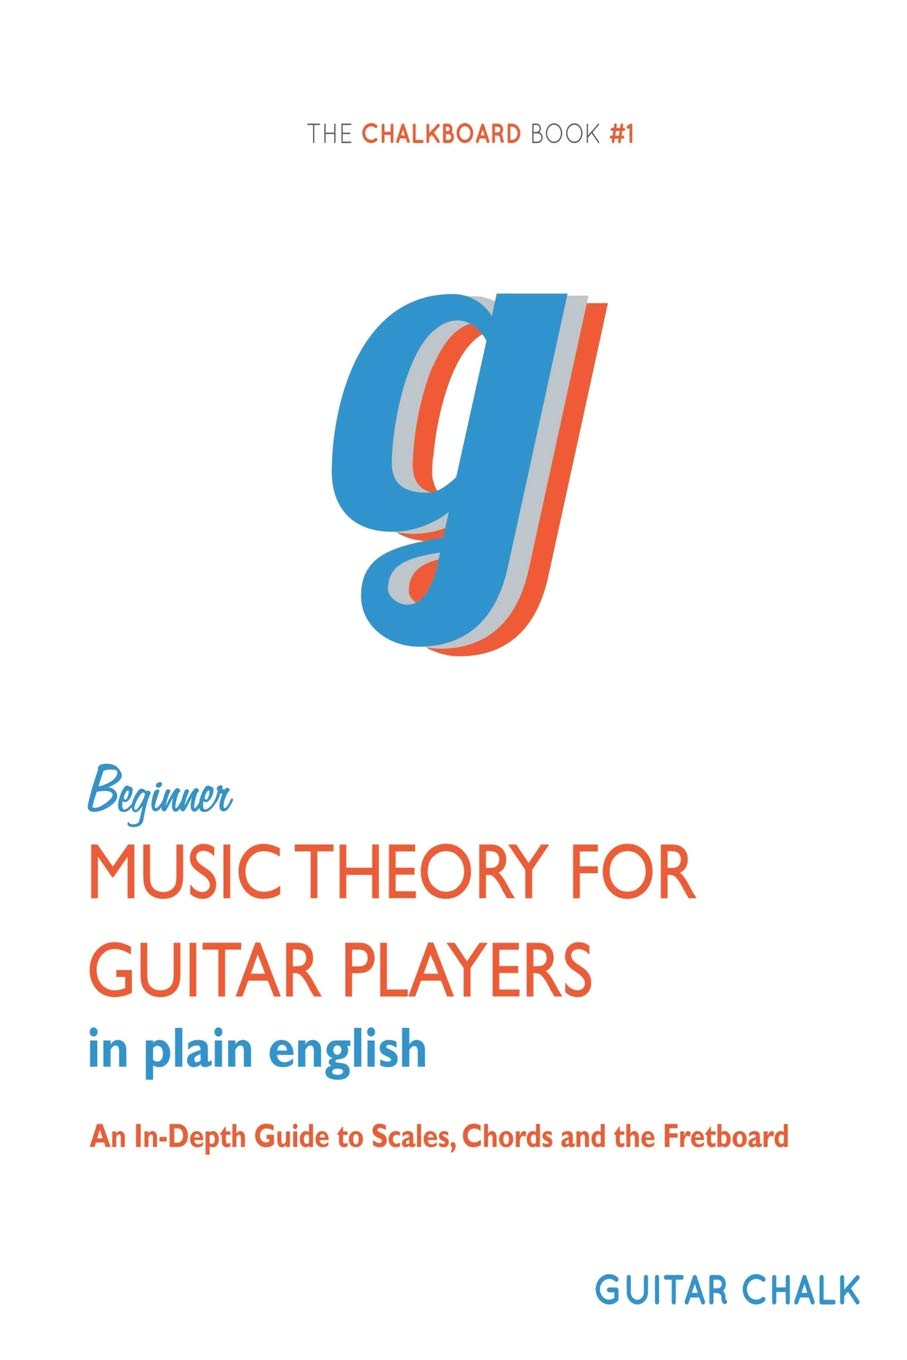 Beginner Music Theory For Guitar Players An In Depth Guide To